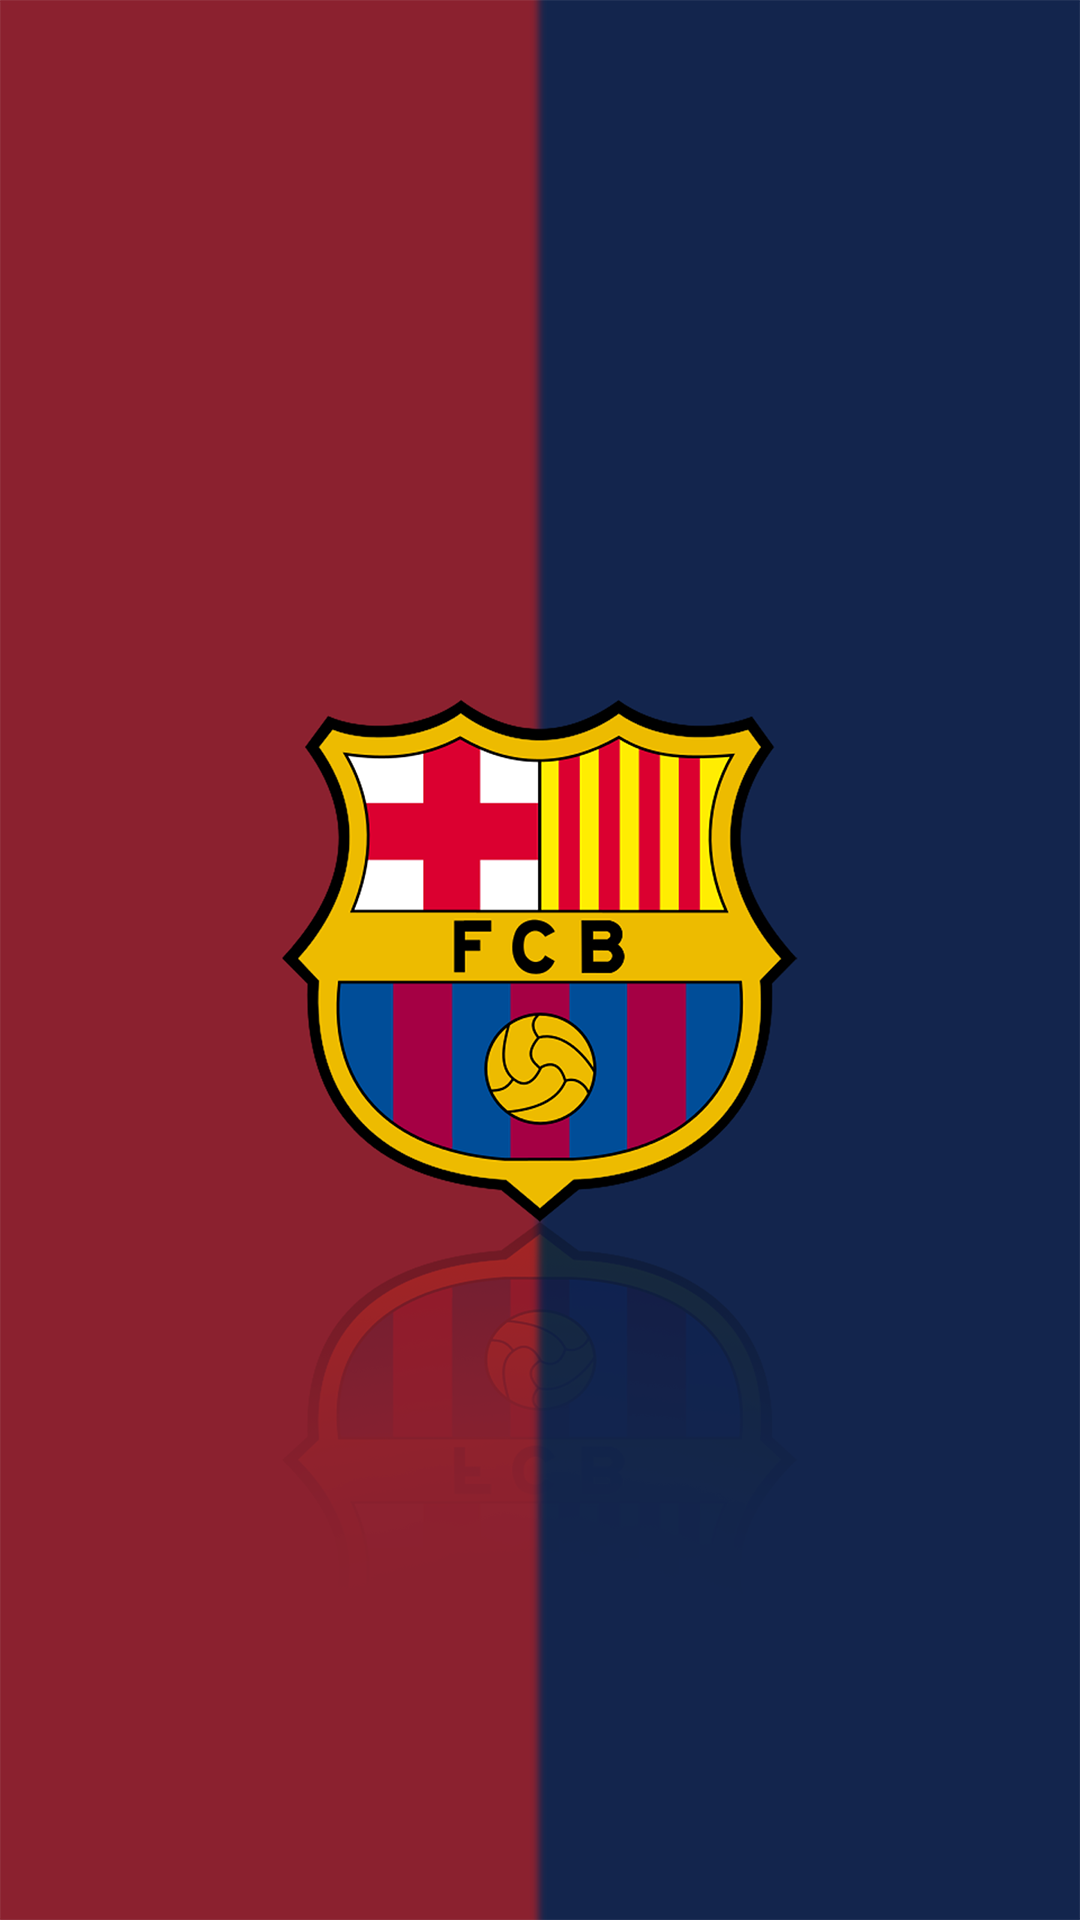 Wallpaper iphone barcelona -  Fc Barcelona Wallpaper Iphone 6s By Lirking20